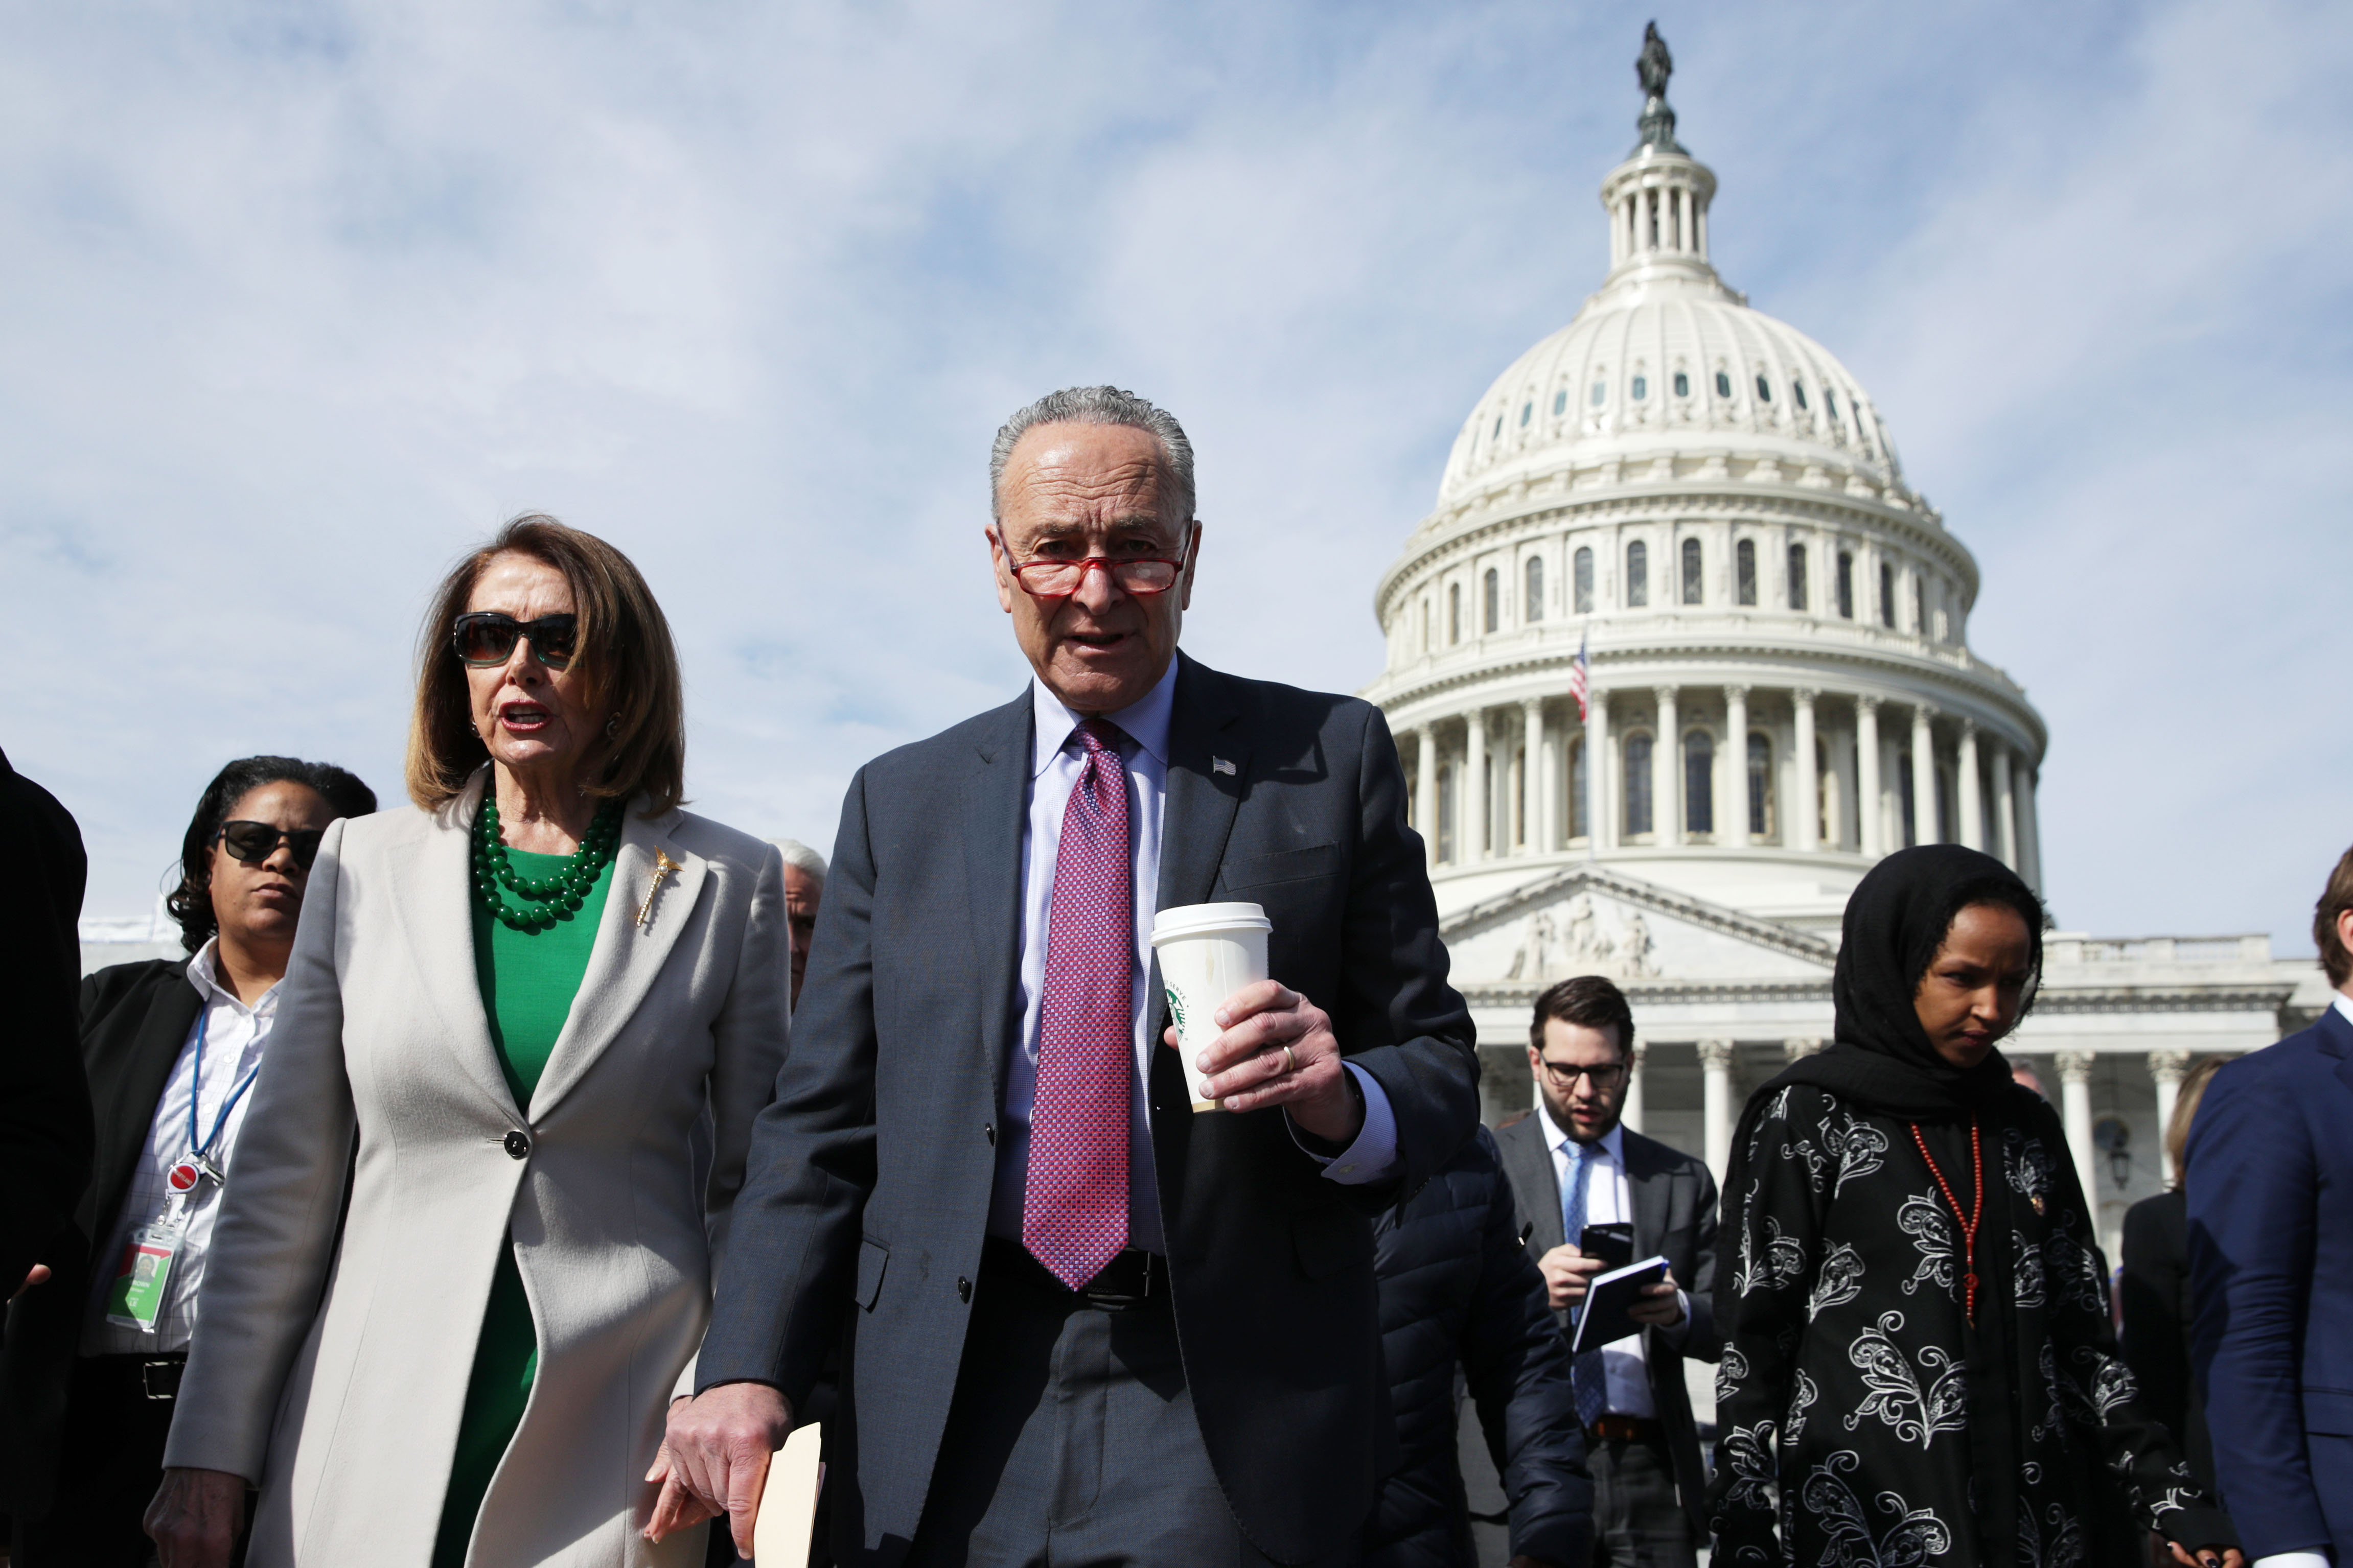 Mueller report: Pelosi and Schumer want Mueller to testify to Congress